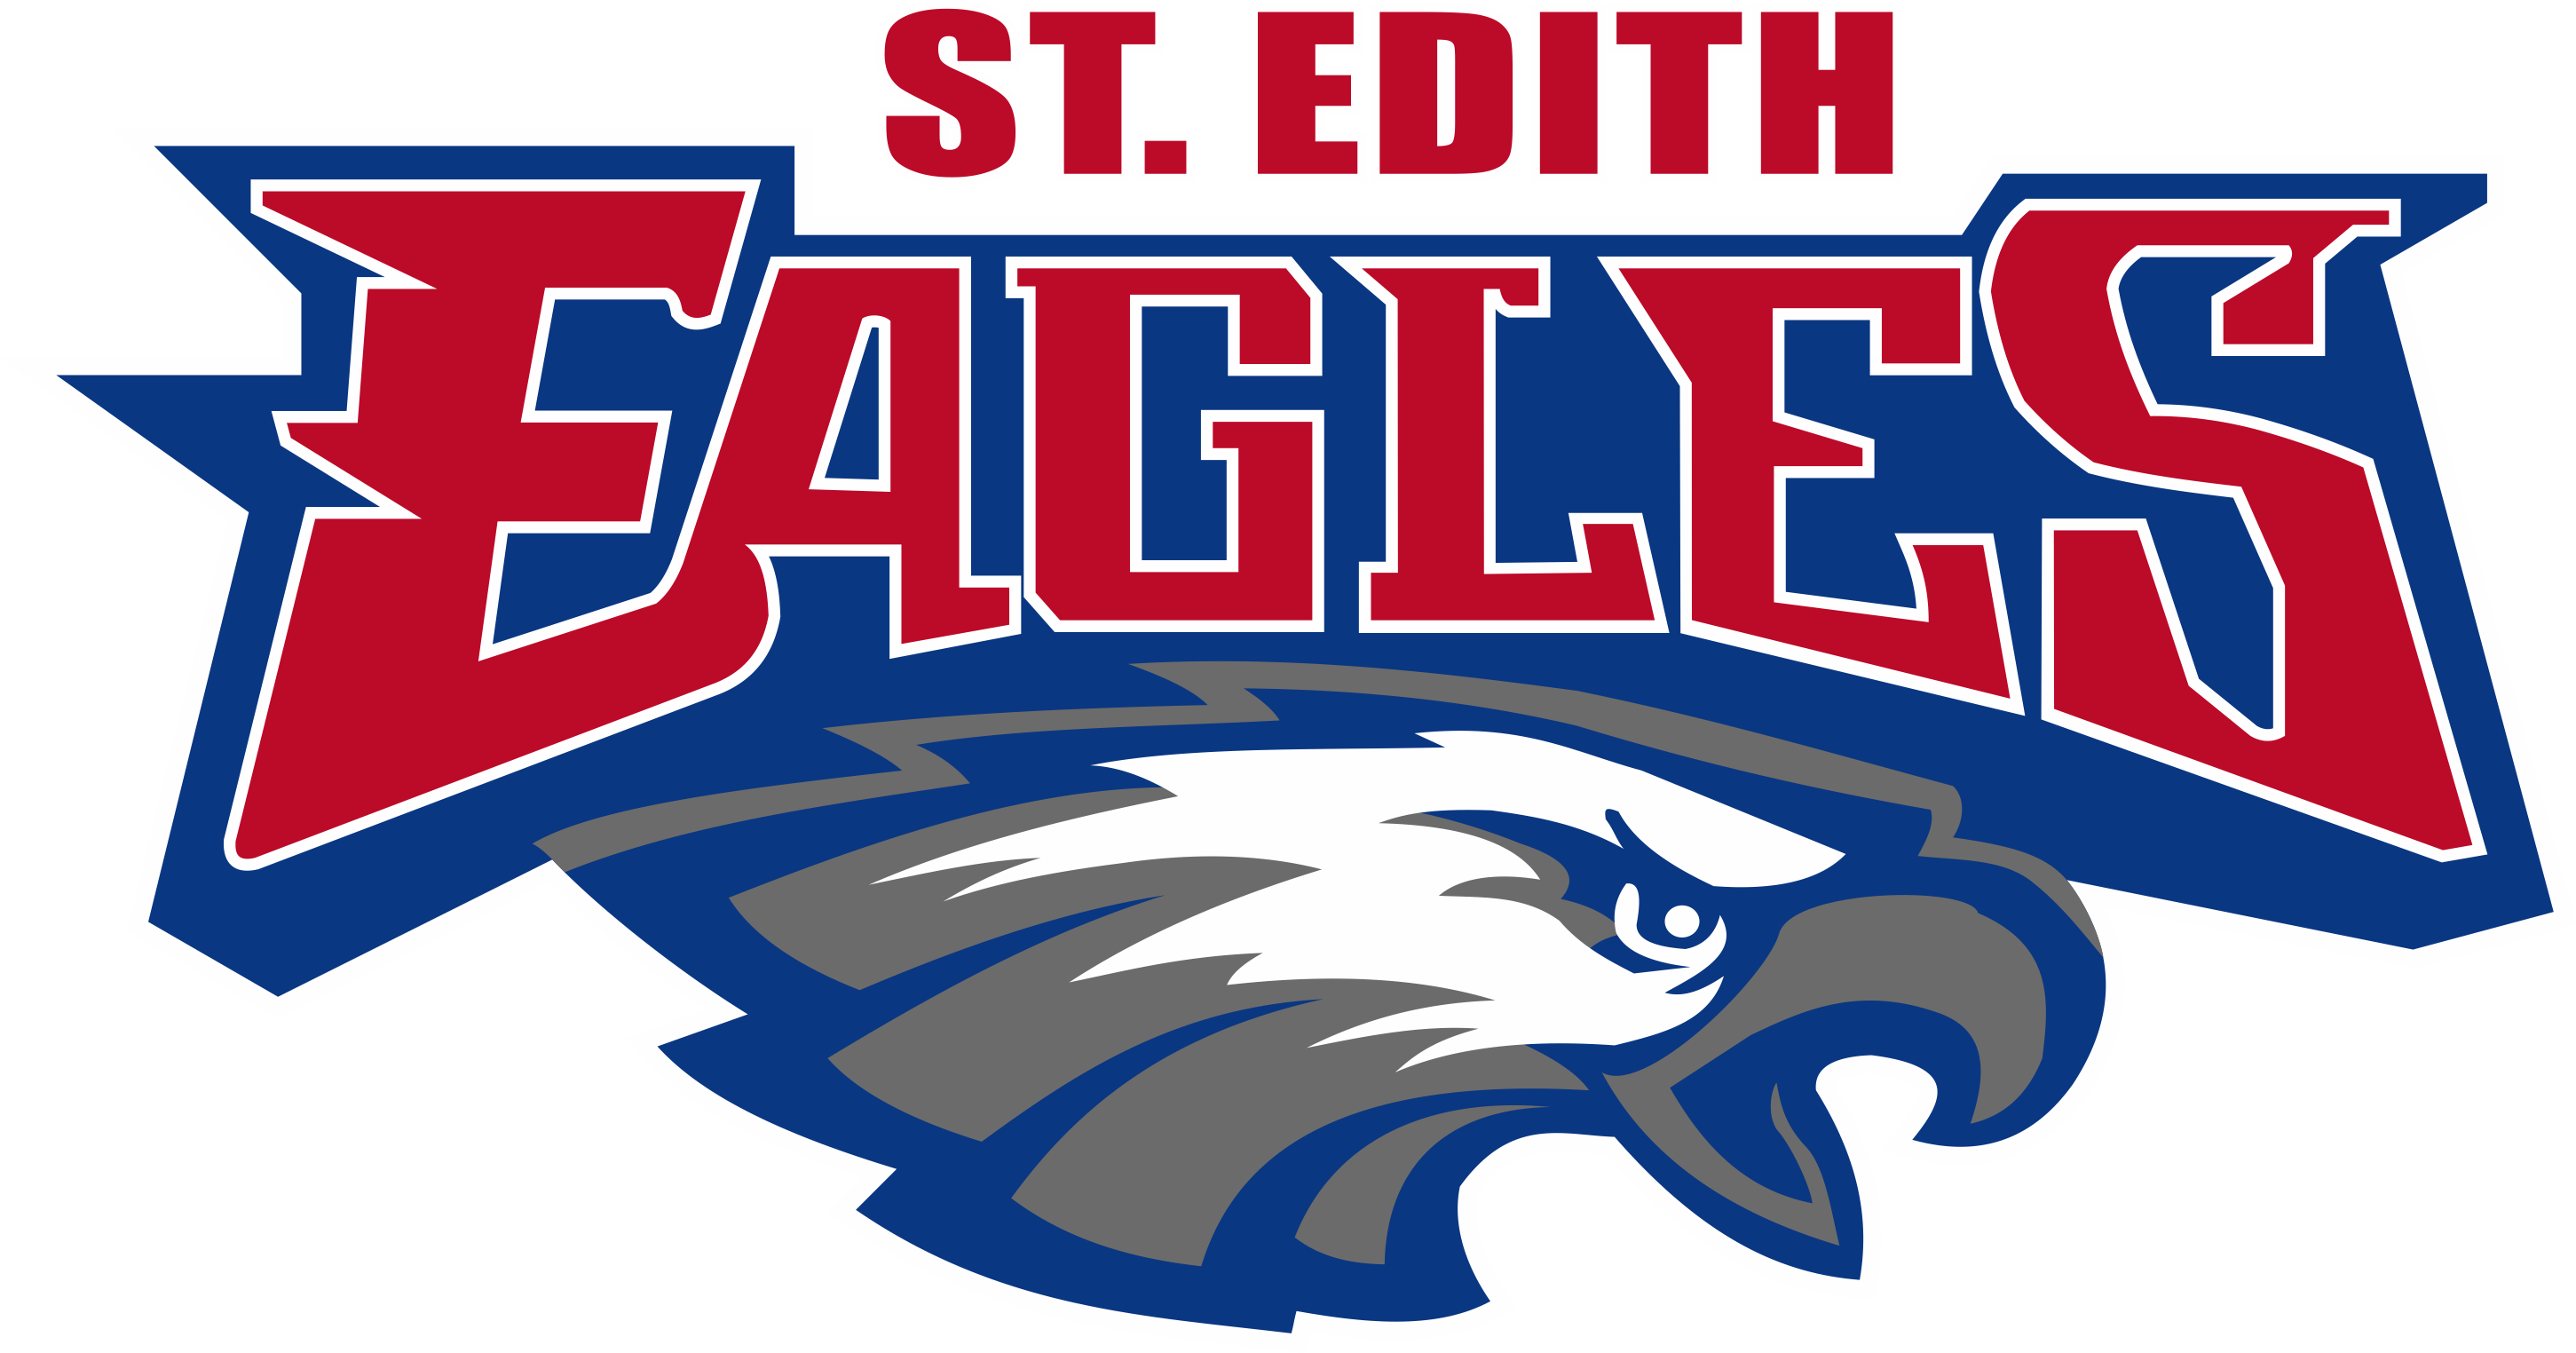 st edith logo on color seperations